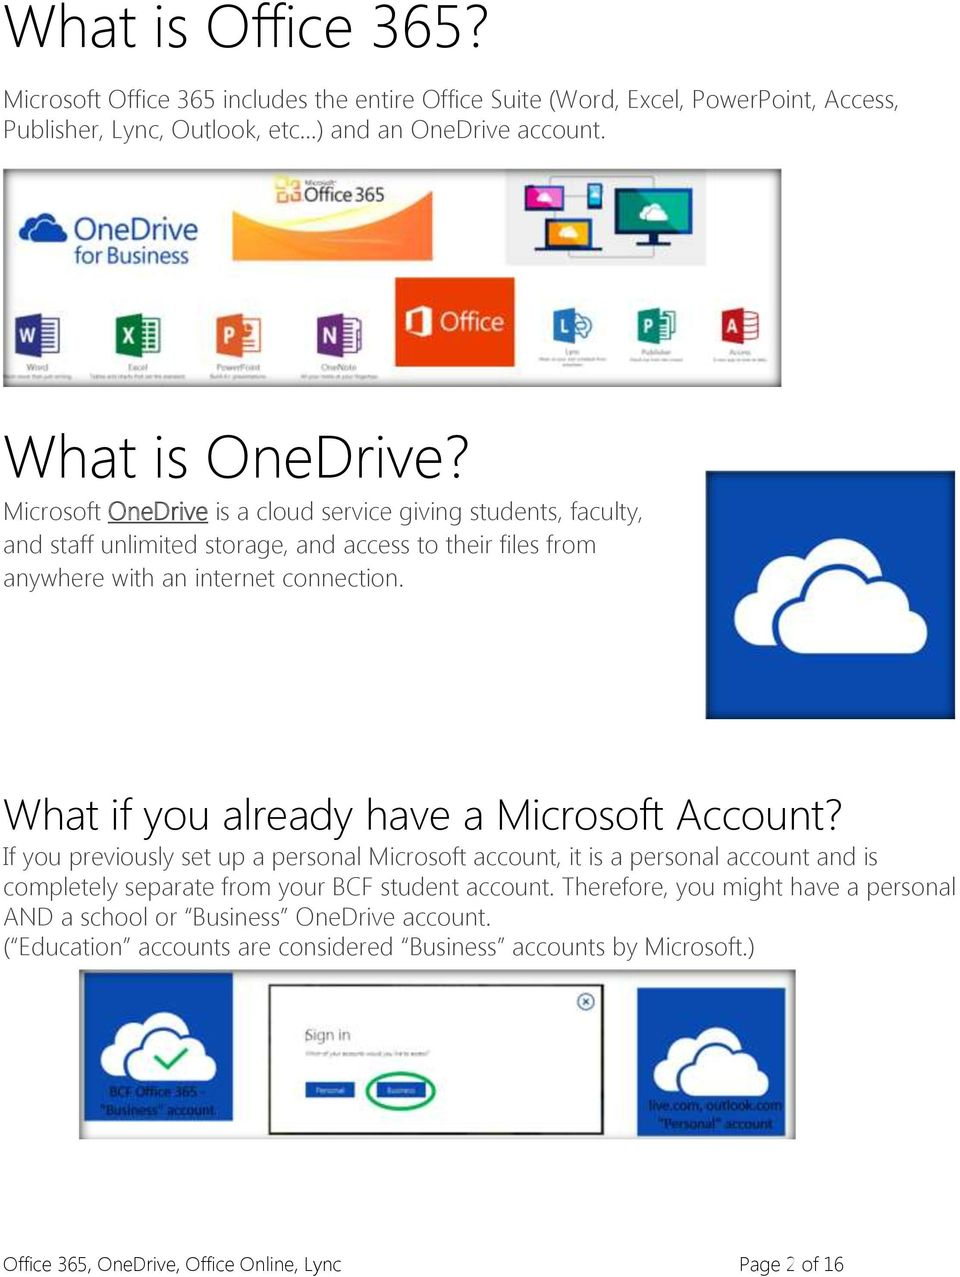 What if you already have a Microsoft Account? If you previously set up a personal Microsoft account, it is a personal account and is completely separate from your BCF student account.